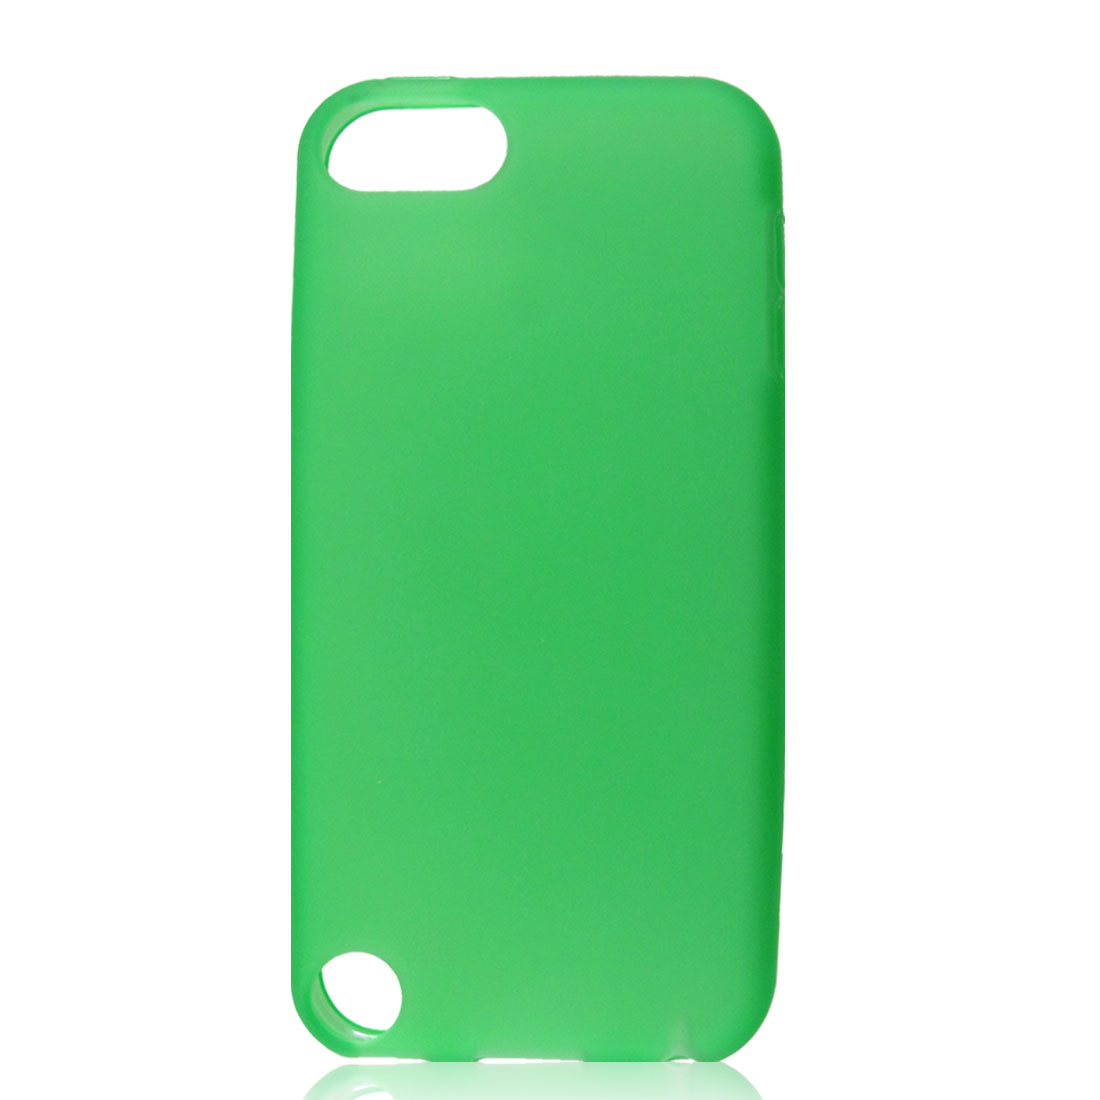 Green Soft Plastic Case Cover Shell for Apple iPod Touch 5 5th